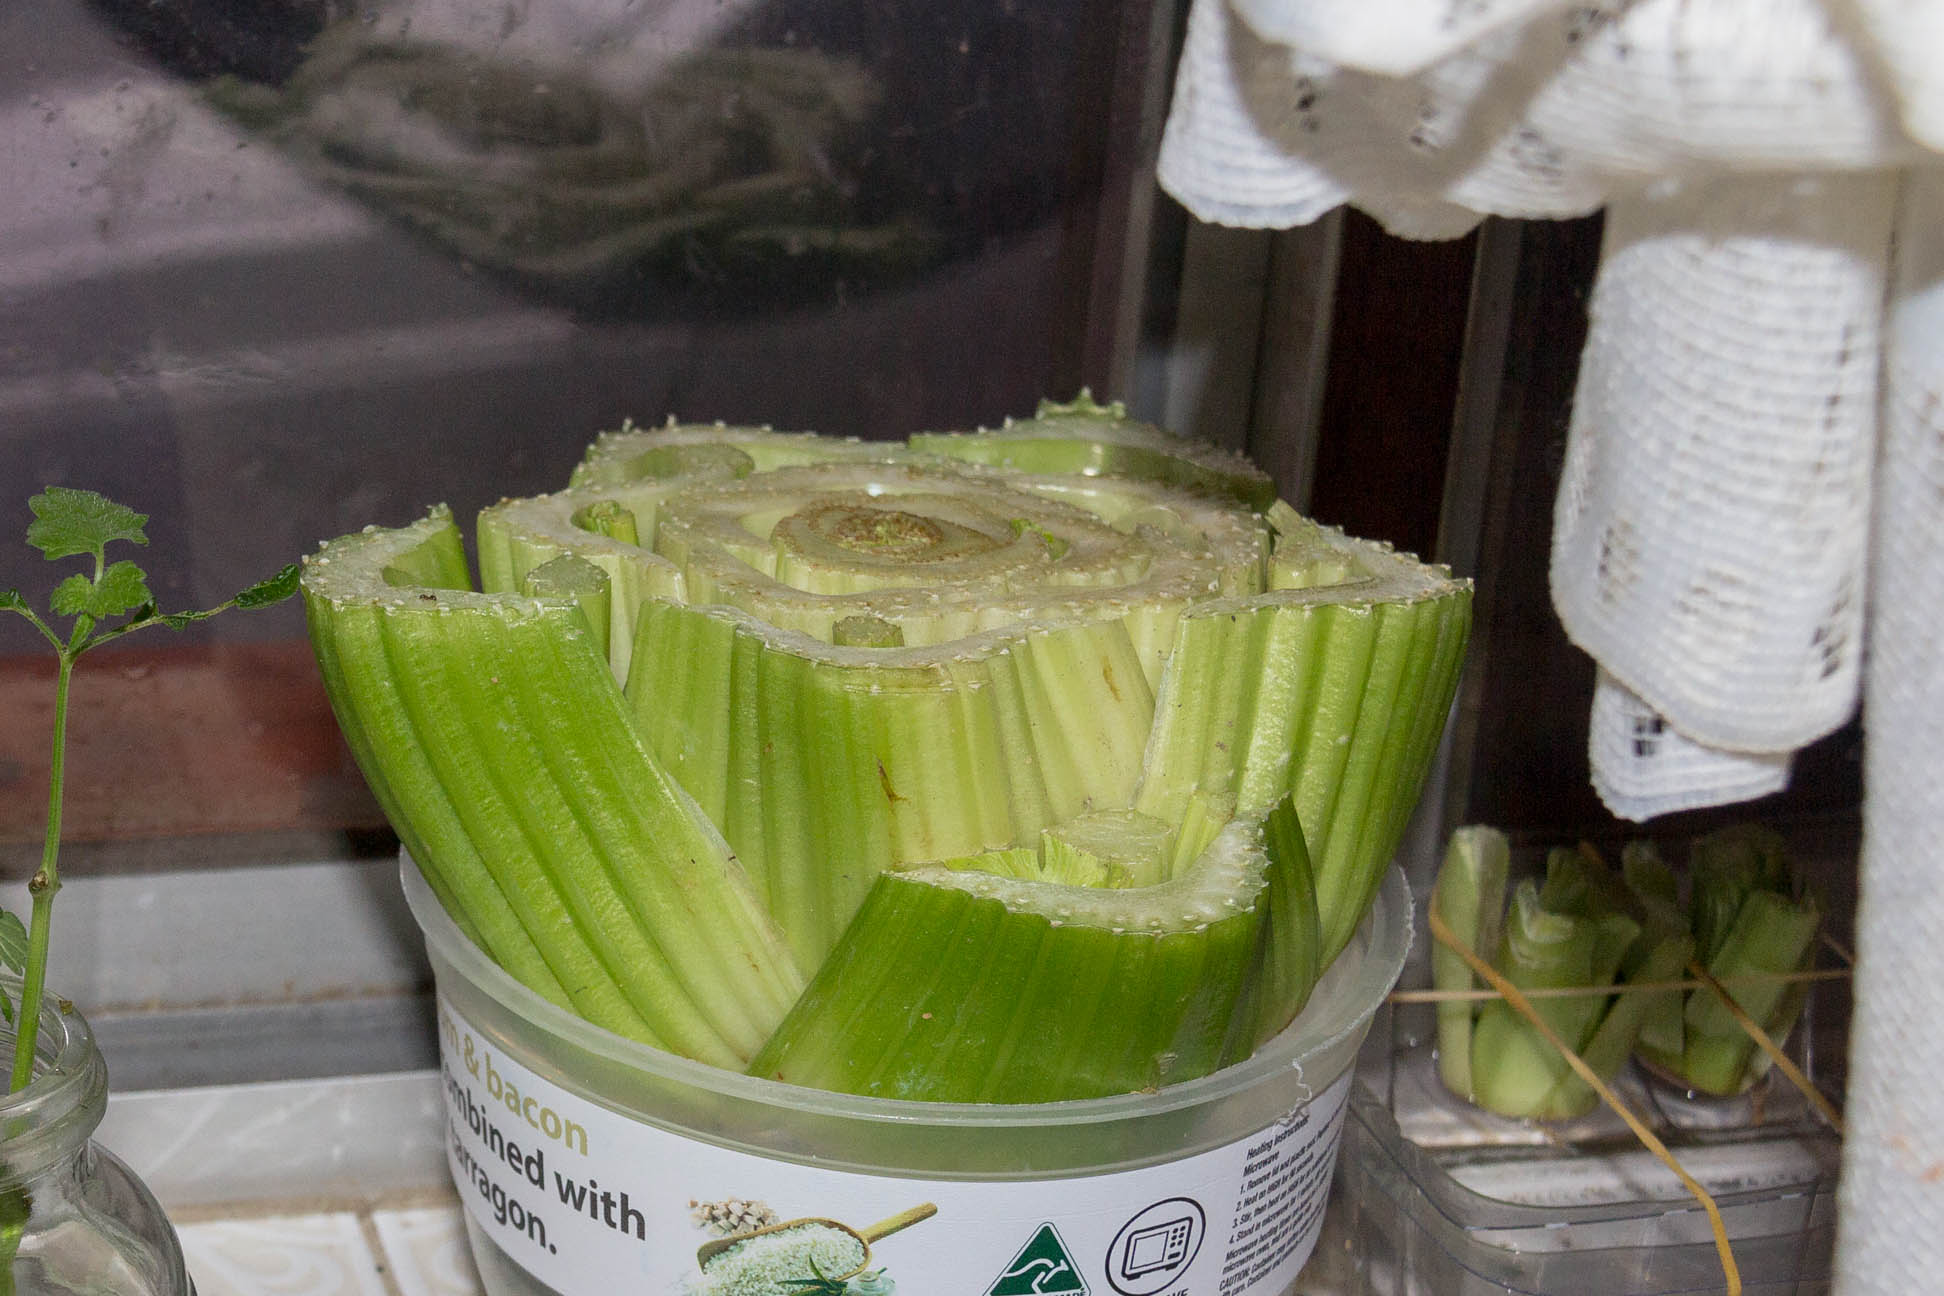 bottom half of celery suspended in a plastic container